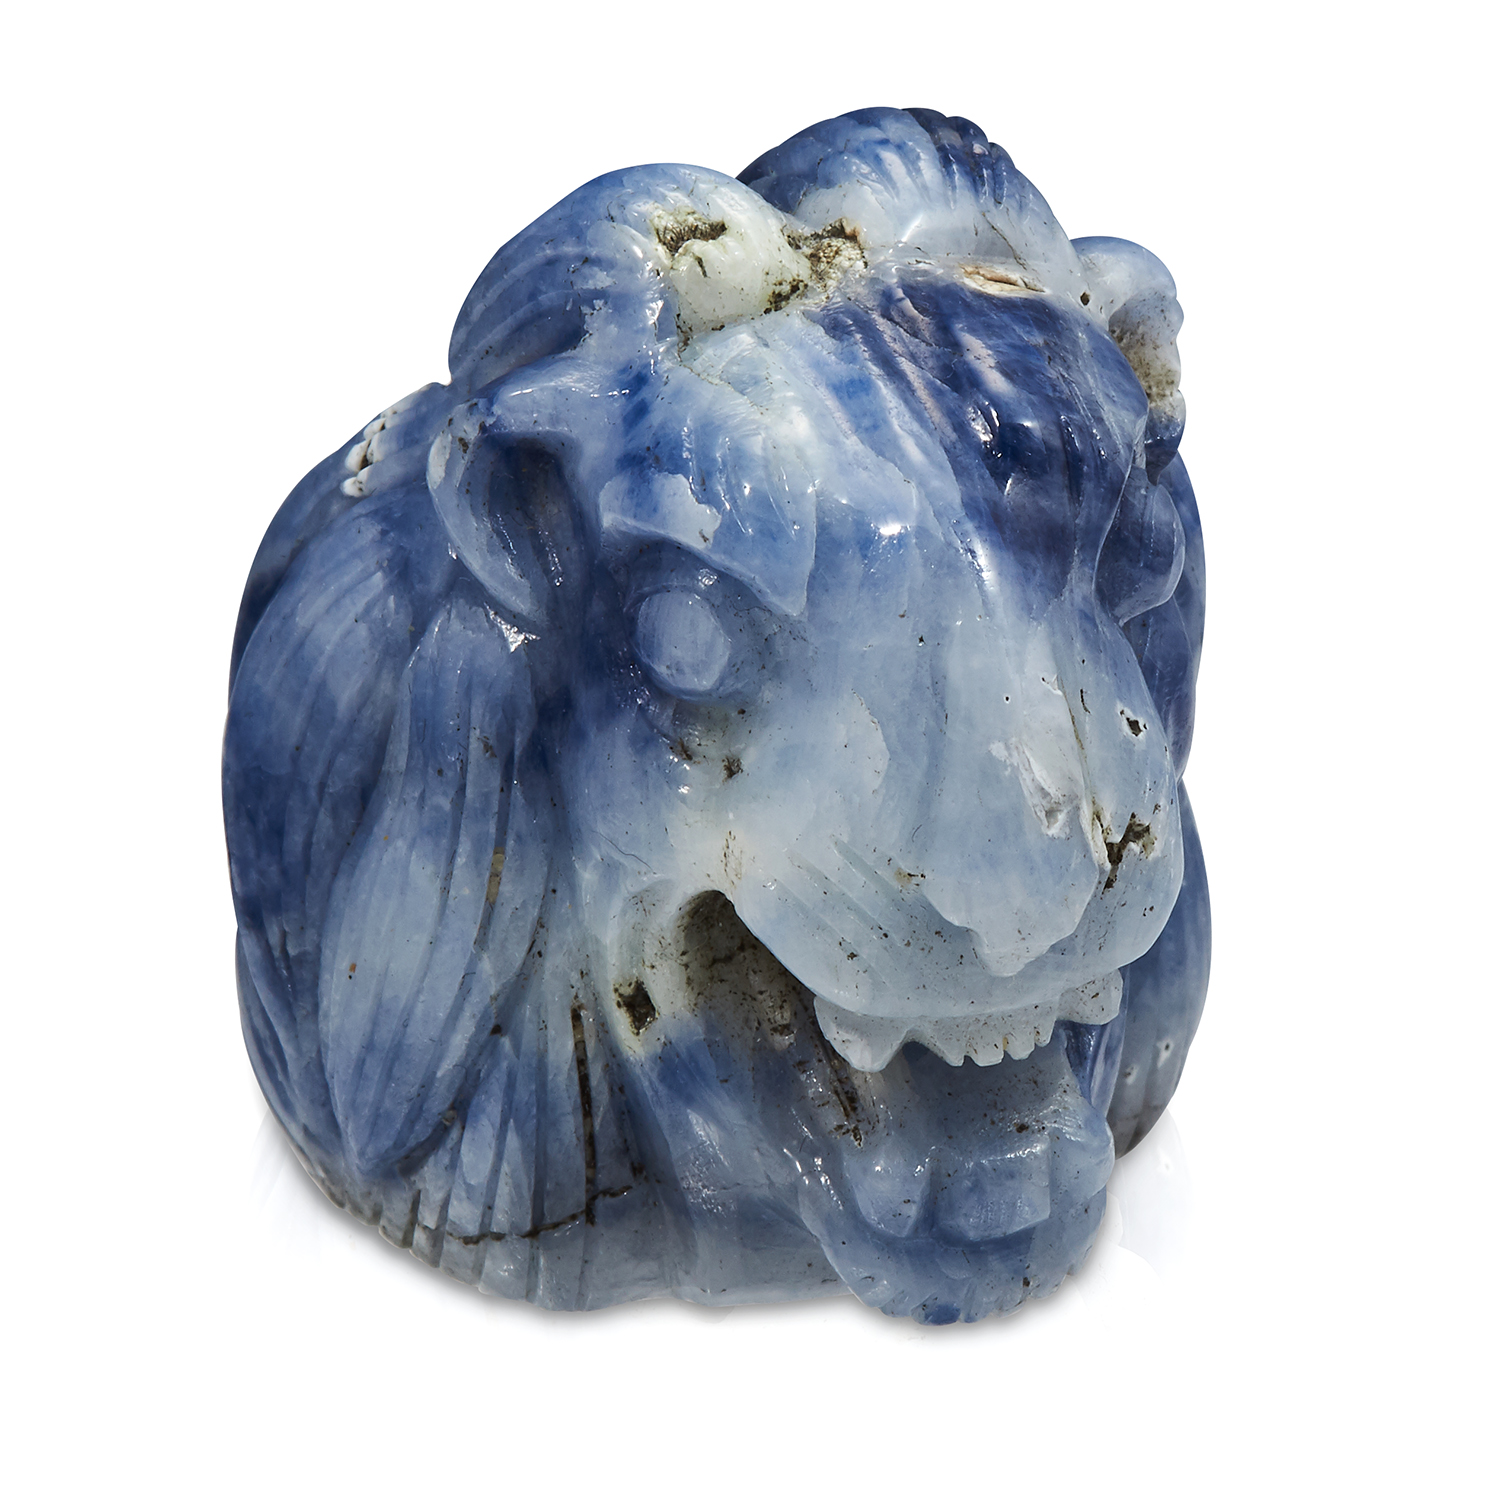 Los 324 - A 520 CARAT CARVED SAPPHIRE STATUE OF A LIONS HEAD, carved in detail to depict a lion roaring, 4.